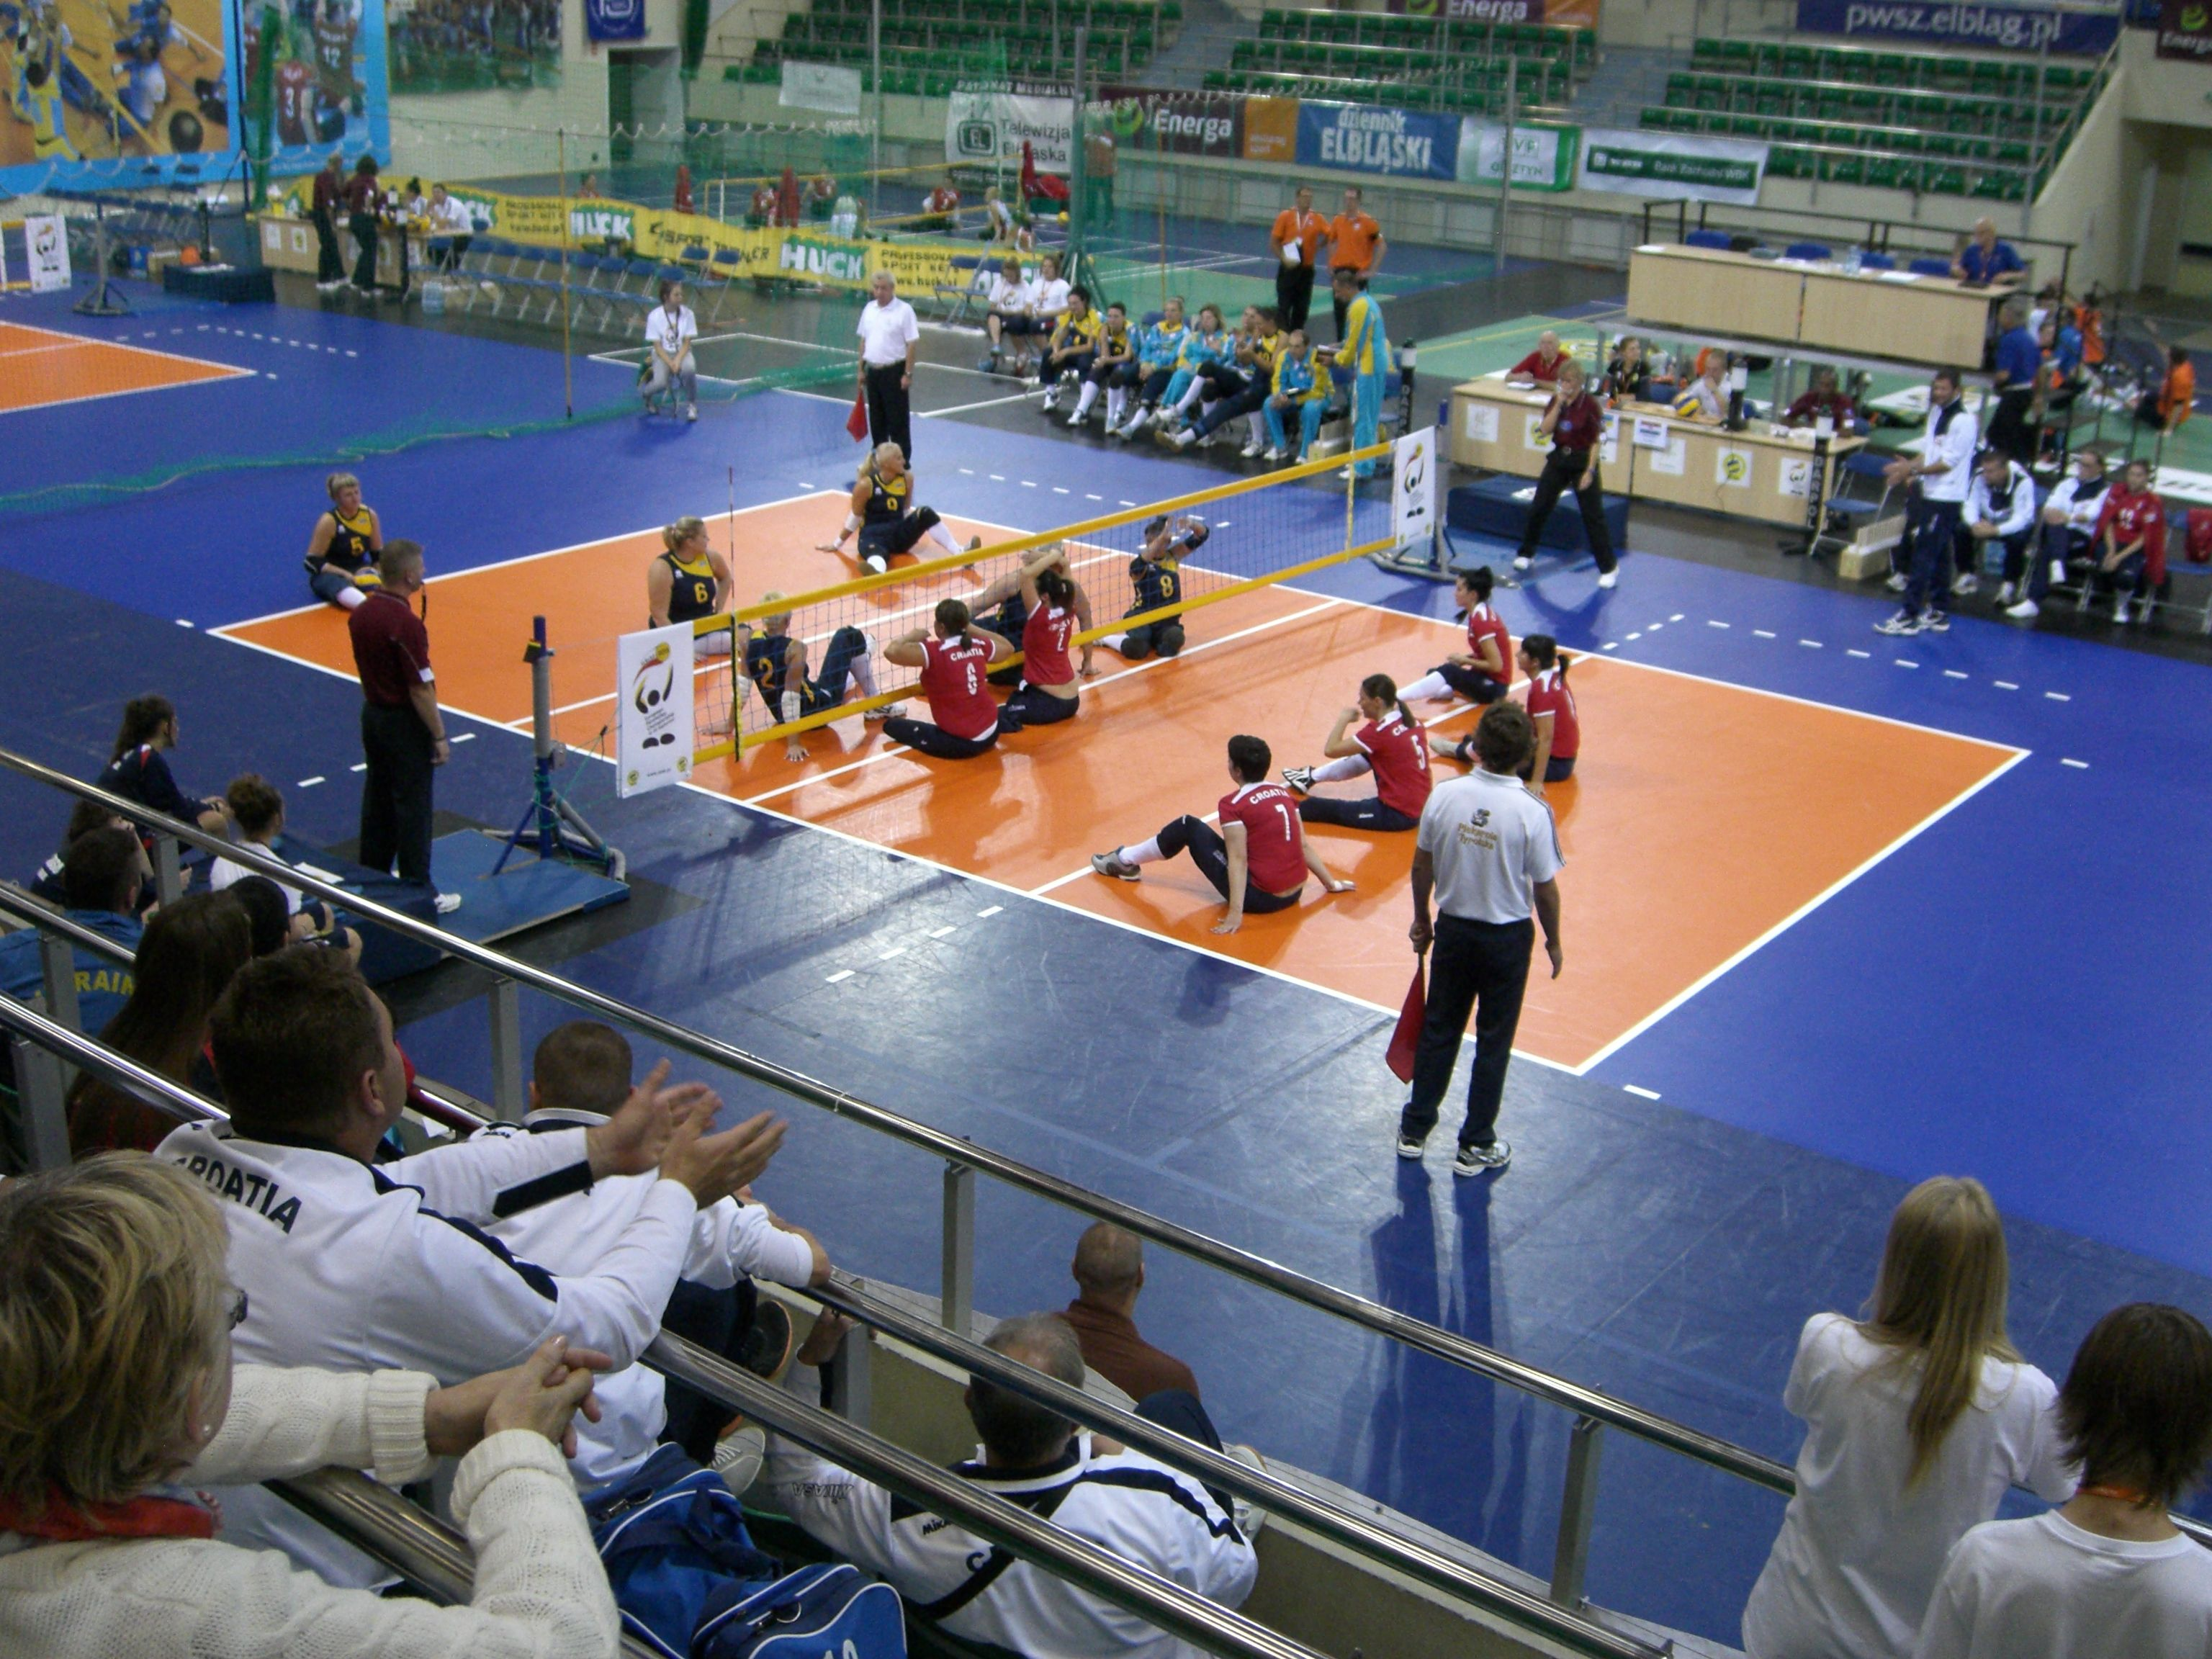 Gli europei di sitting volley in Polonia nel 2013